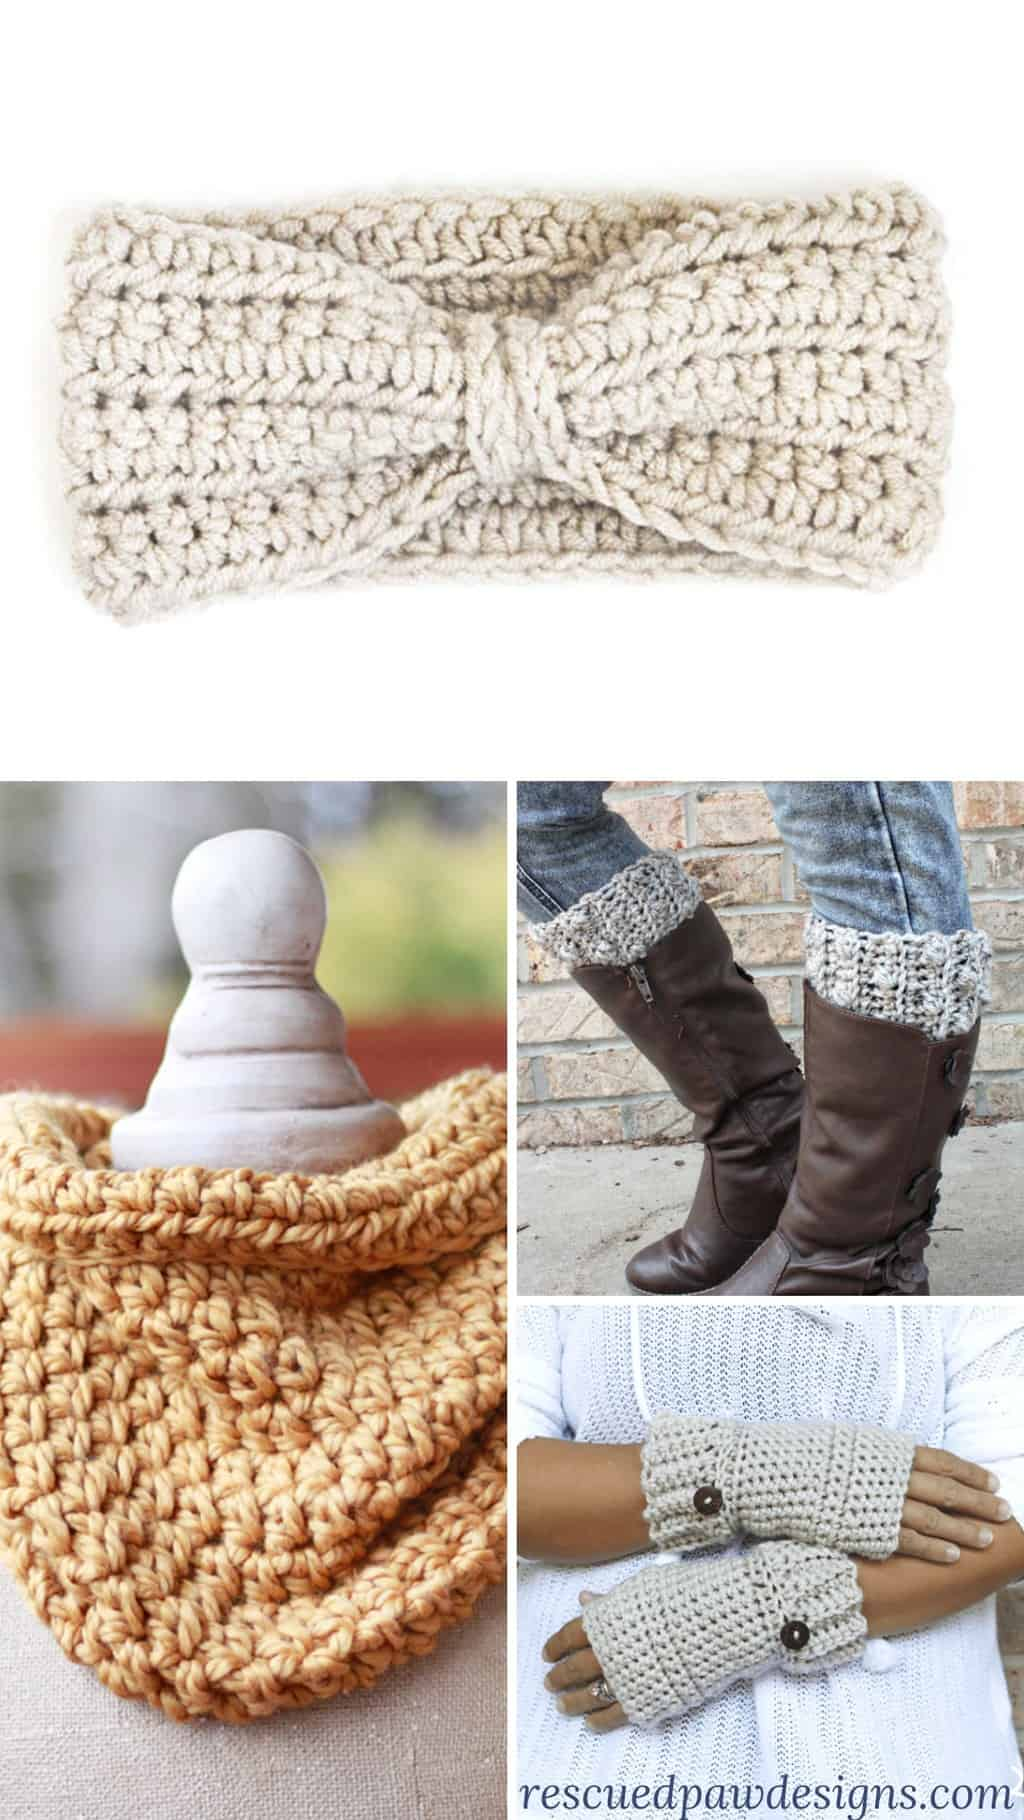 Crochet Patterns that are perfect for beginners - beginner easy crochet patterns